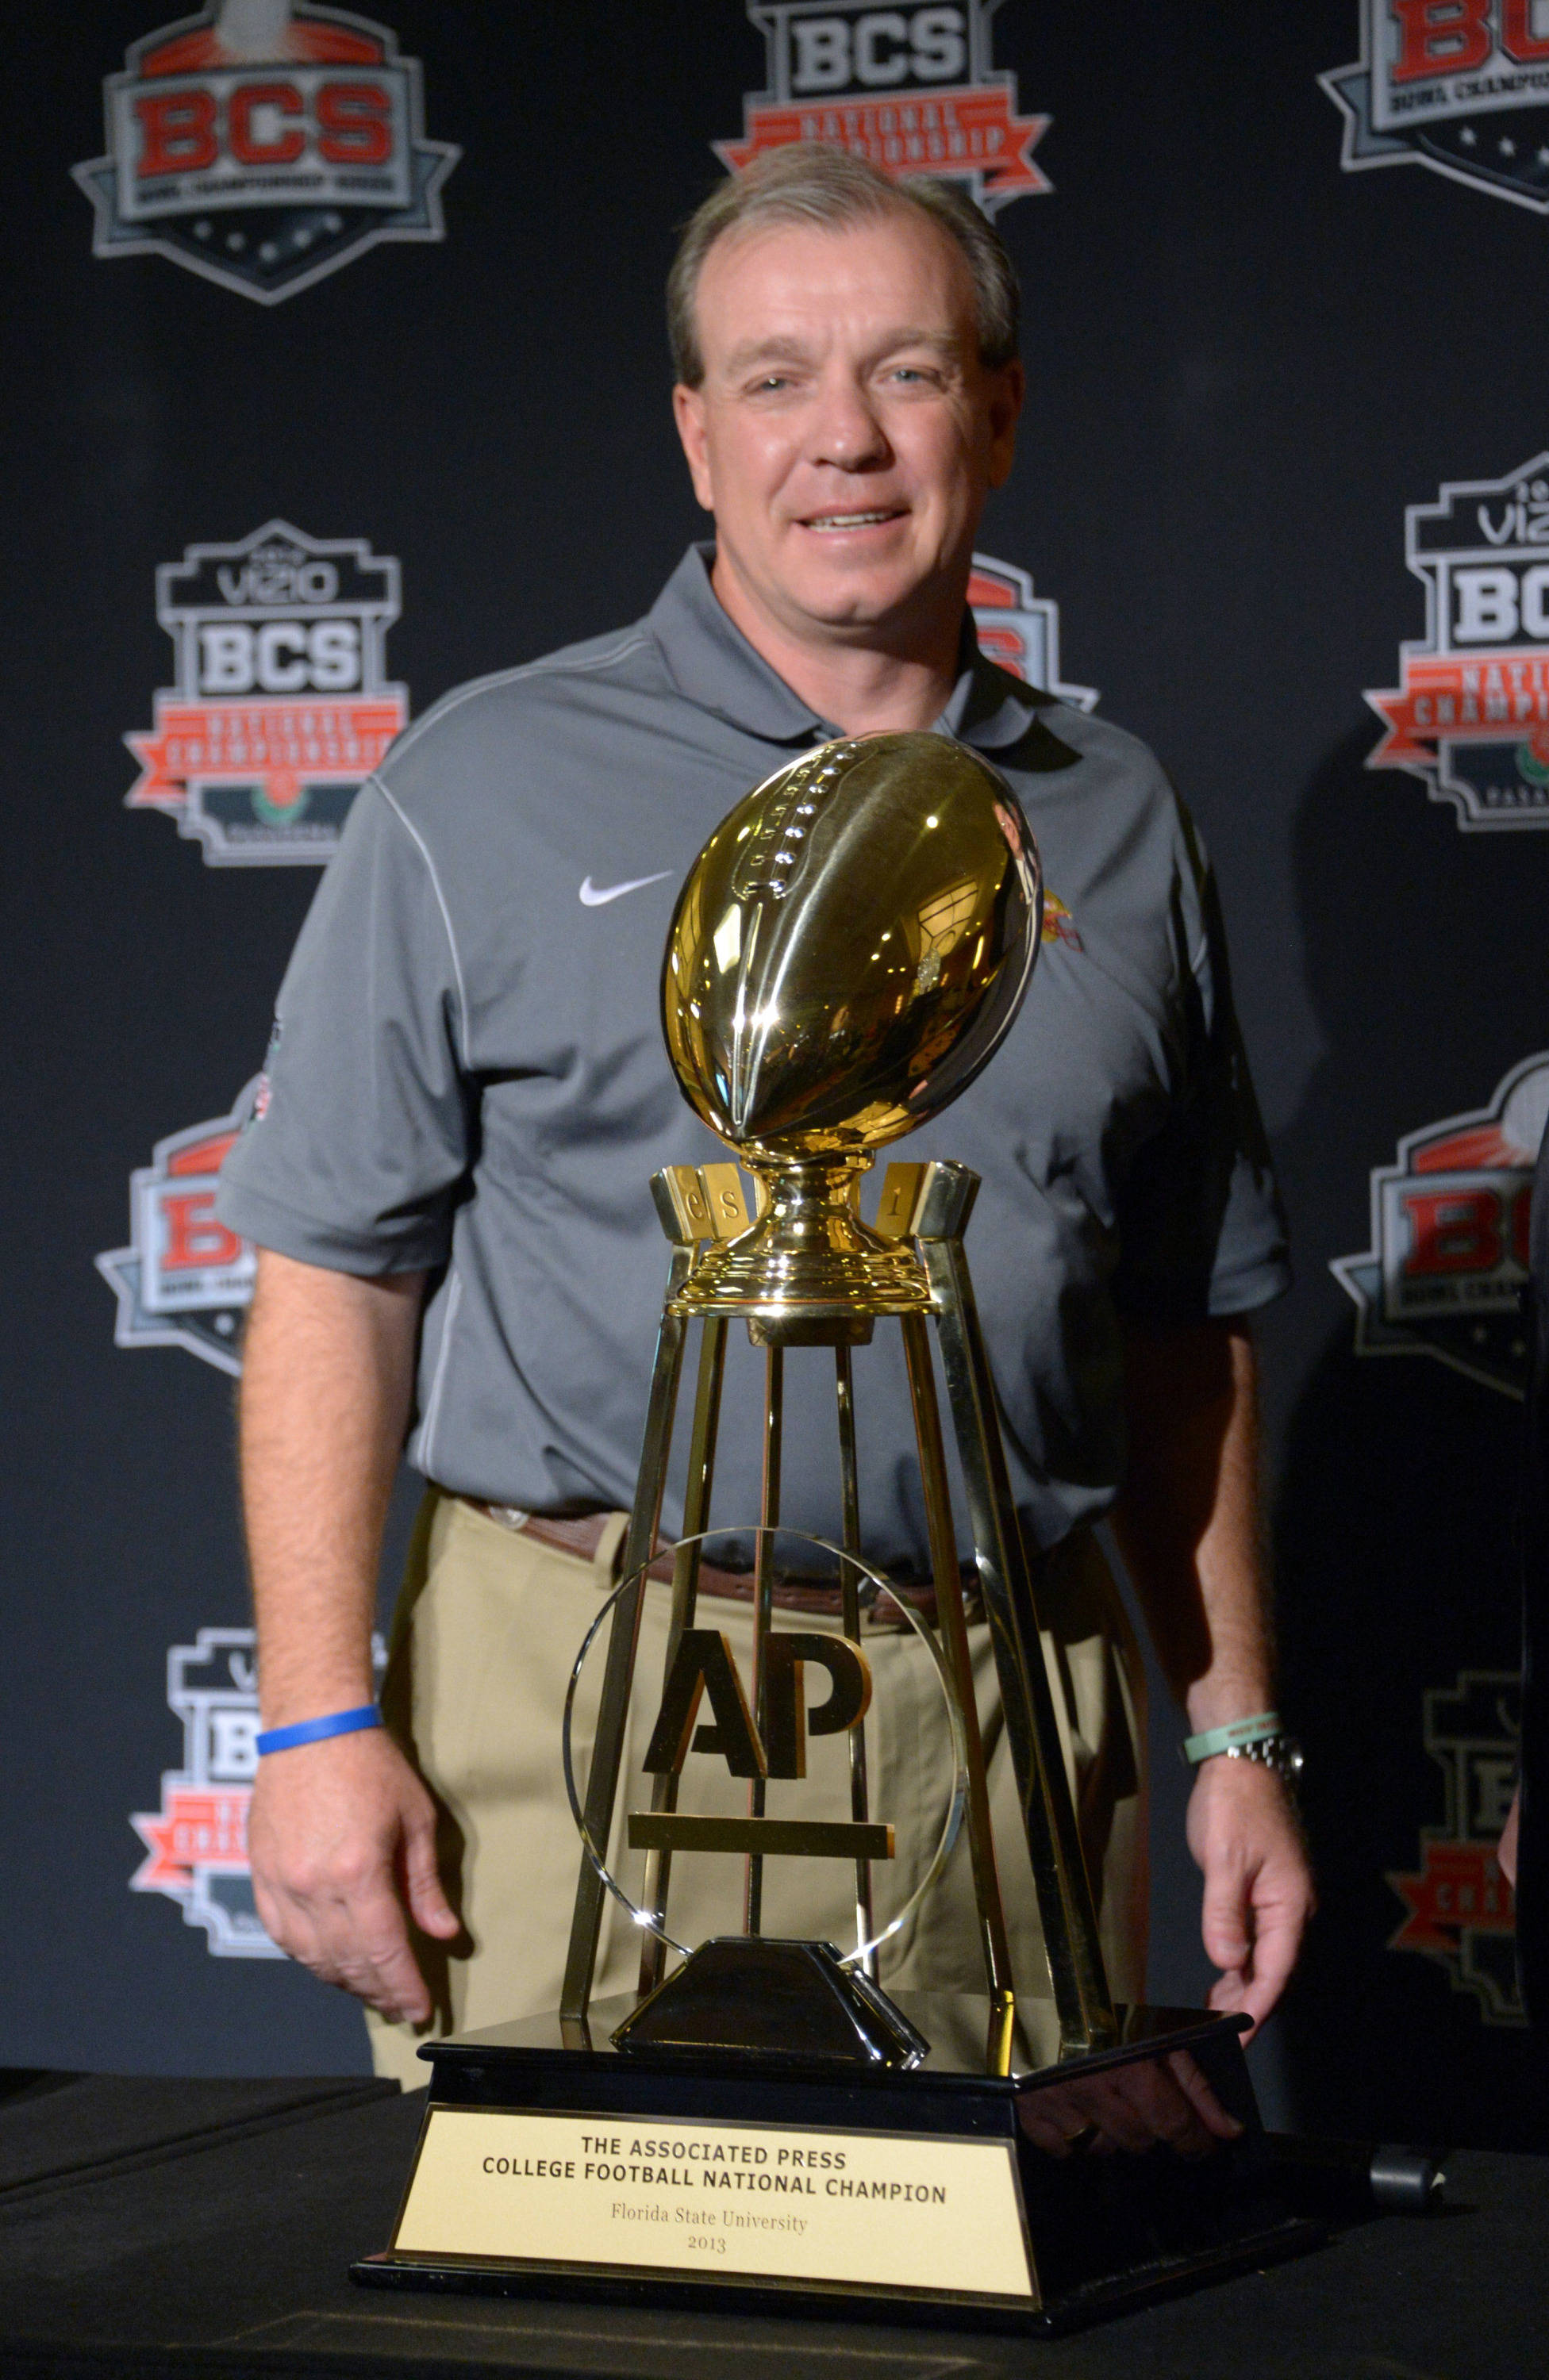 Florida State Seminoles coach Jimbo Fisher poses with the Associated Press college football national champion trophy at 2014 BCS National Championship press conference at Newport Beach Marriott. Mandatory Credit: Kirby Lee-USA TODAY Sports